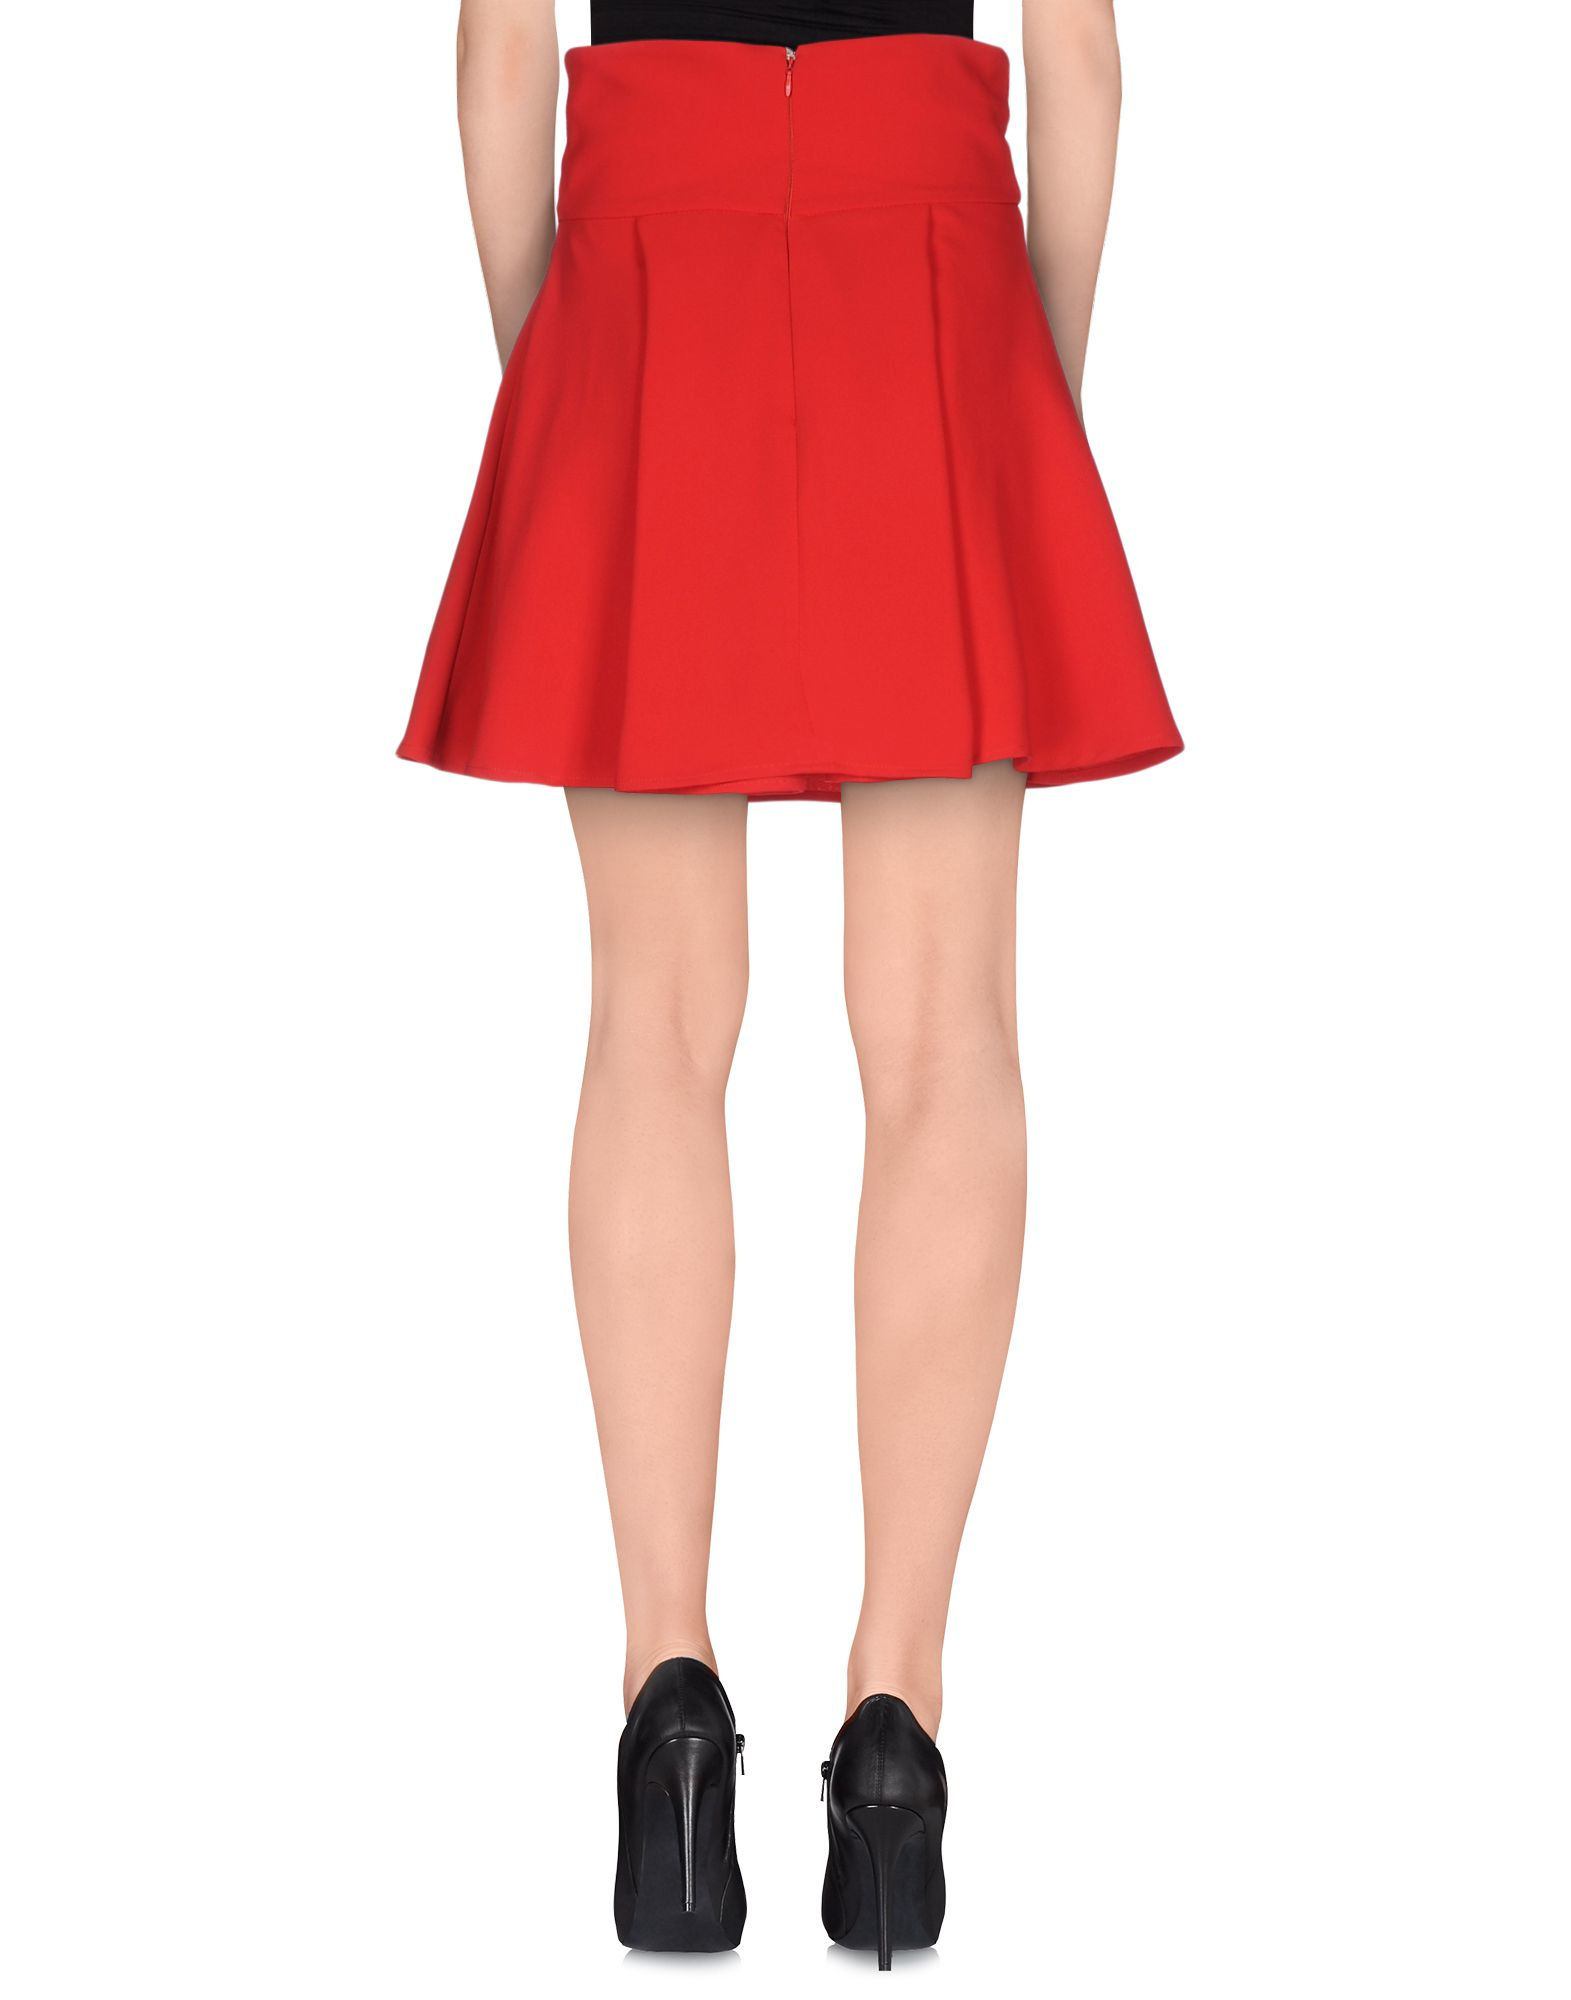 Elisabetta franchi Knee Length Skirt in Red | Lyst